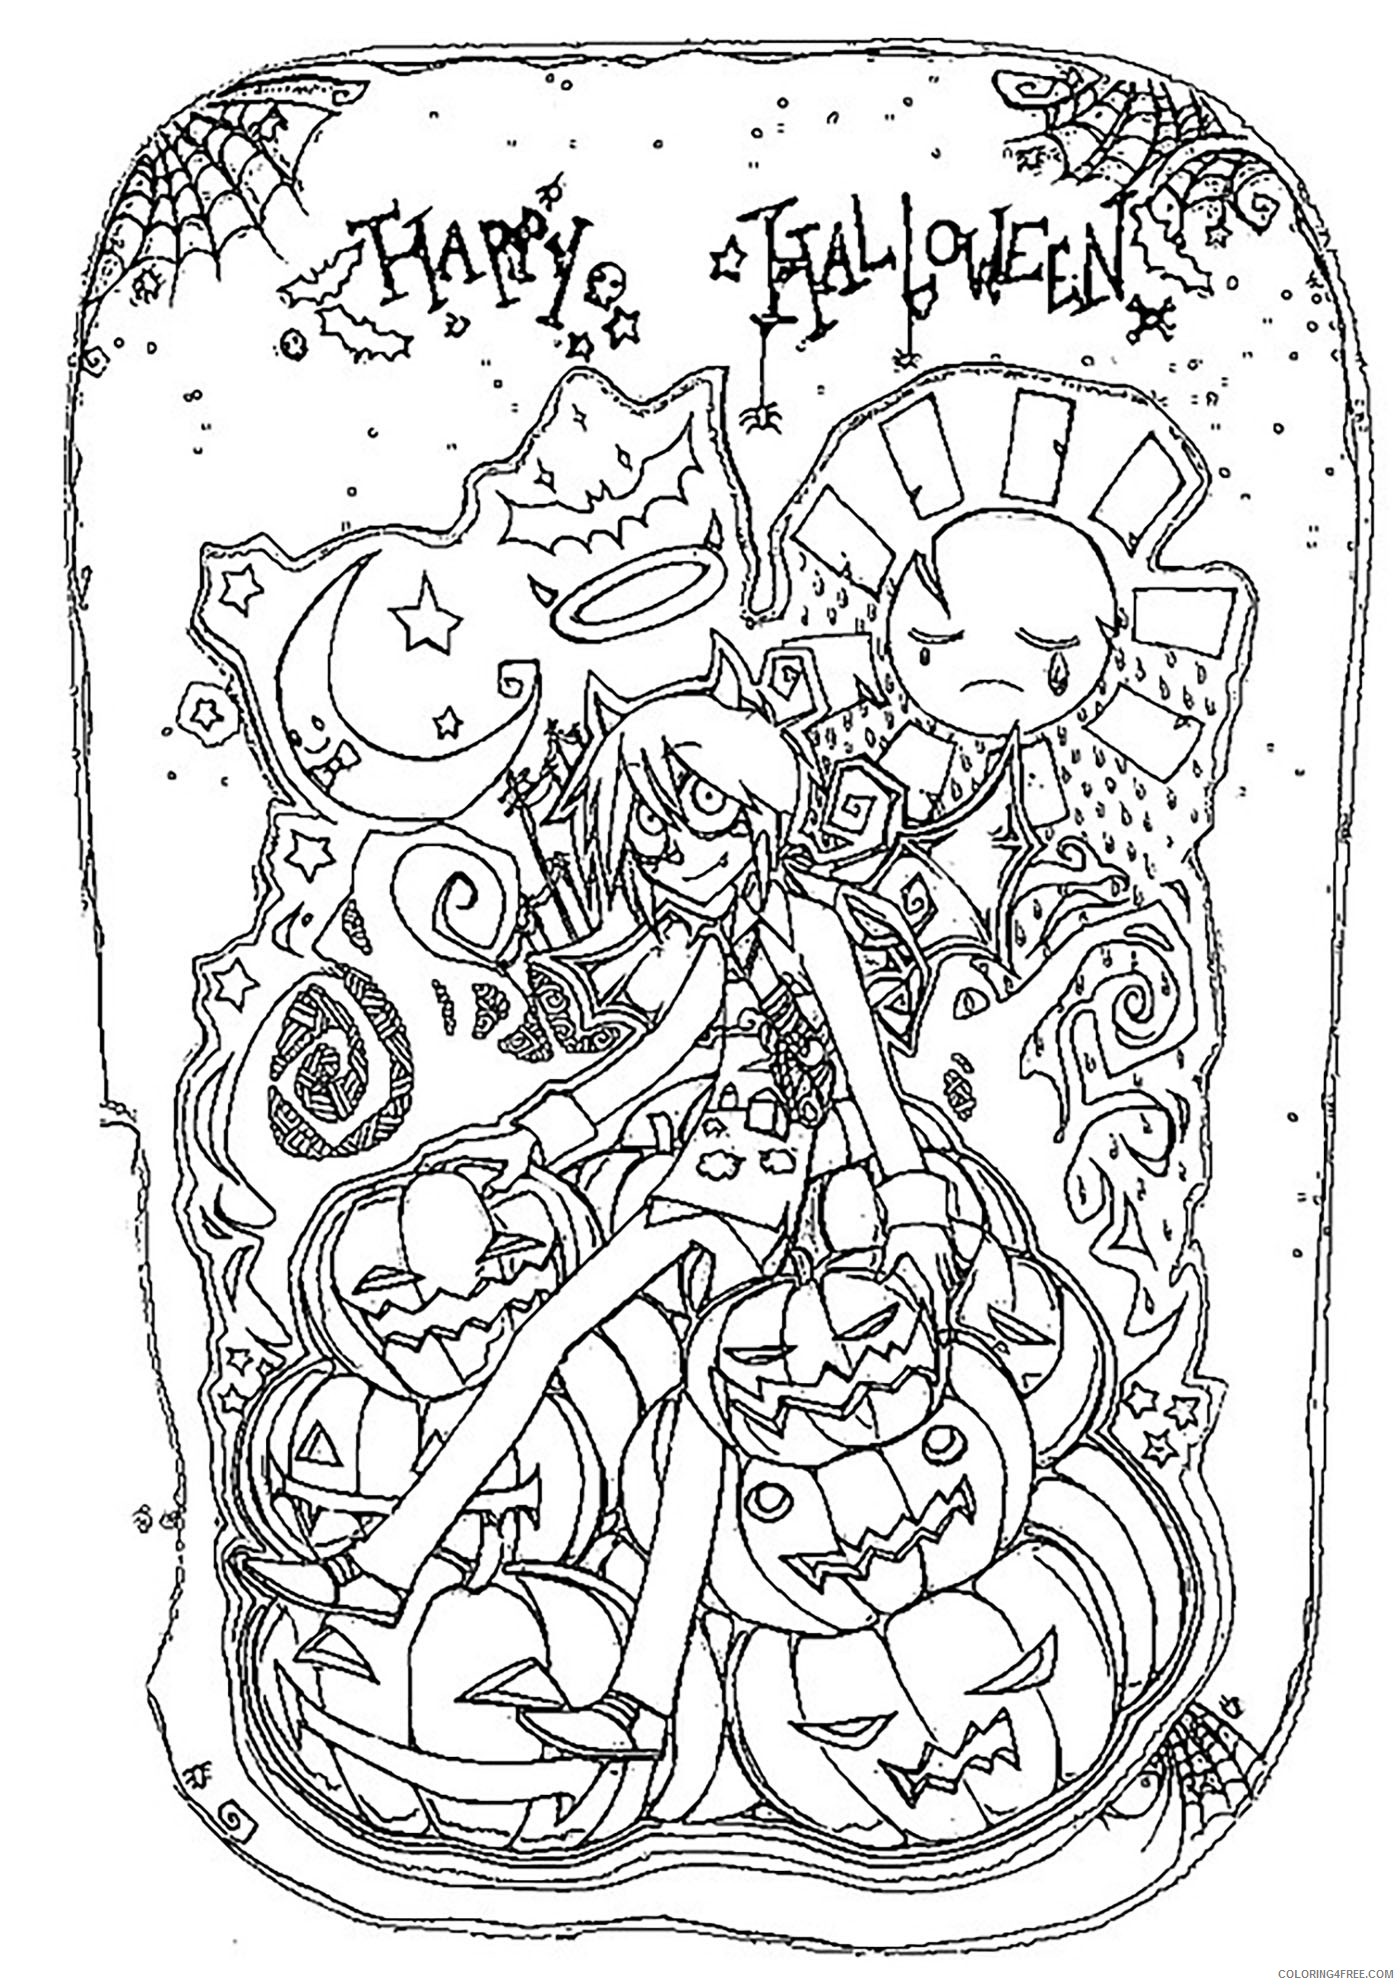 free happy halloween coloring pages for adults Coloring4free